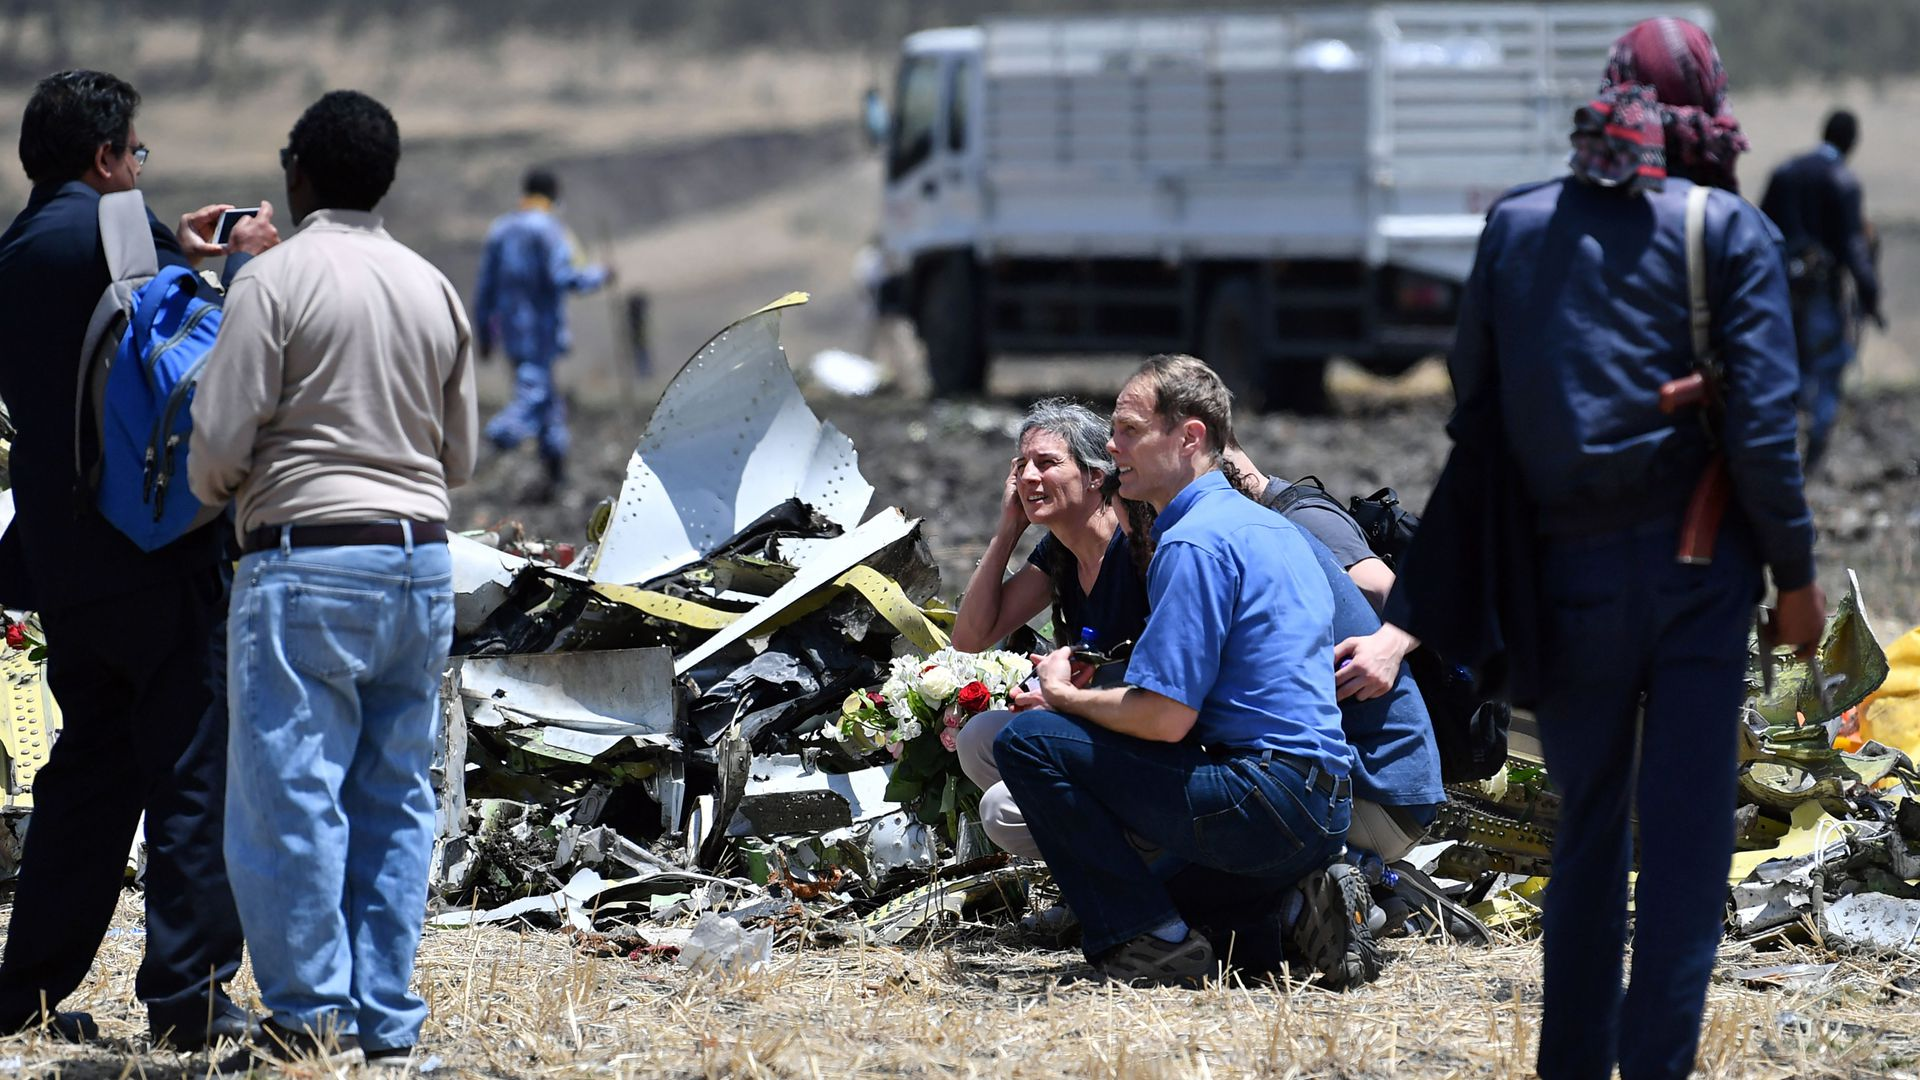 Relatives of the victims of the Ethiopian plane crash sit in a field among debris, looking concerned.